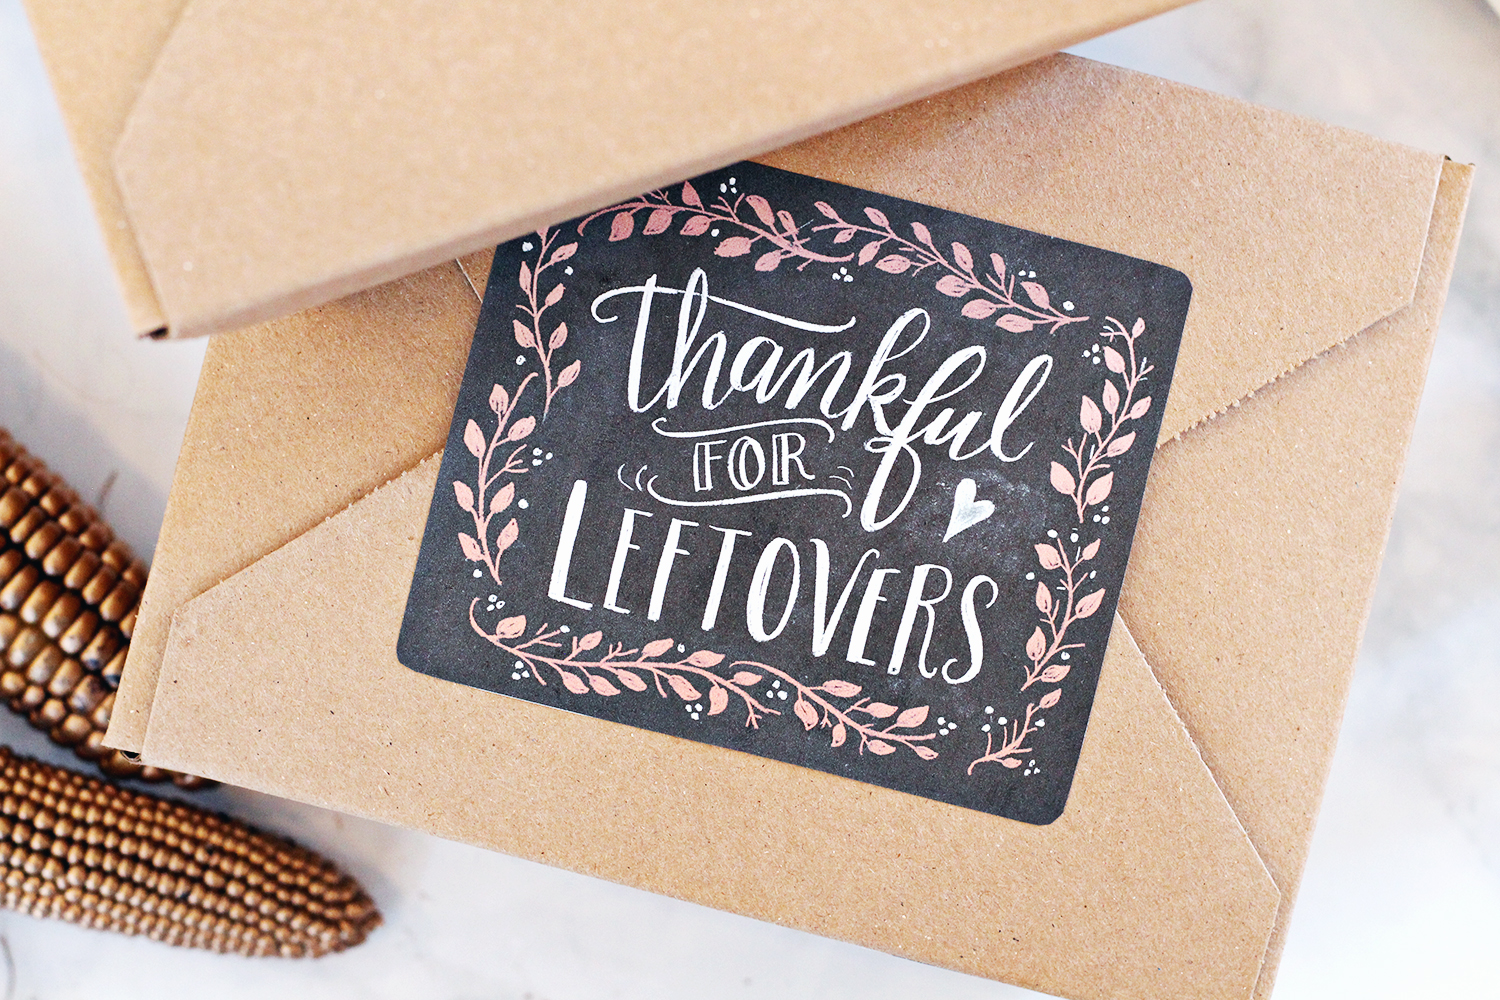 Free downloads for Thanksgiving! Chalk art labels hand drawn by Valerie McKeehan